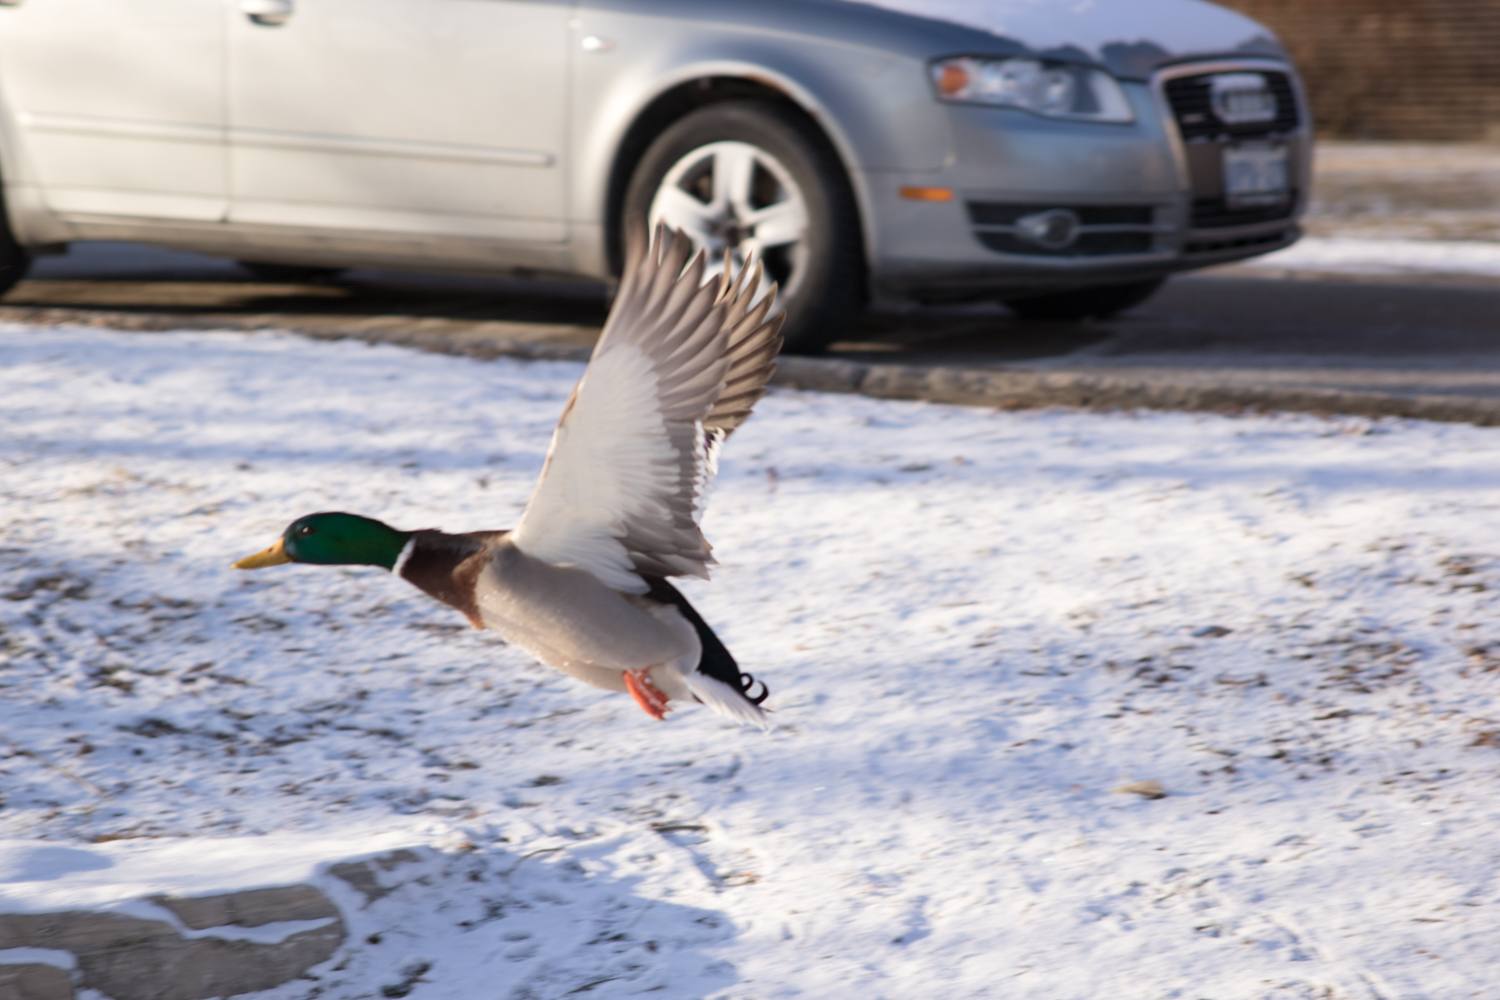 Duck flying though the air. January 19th